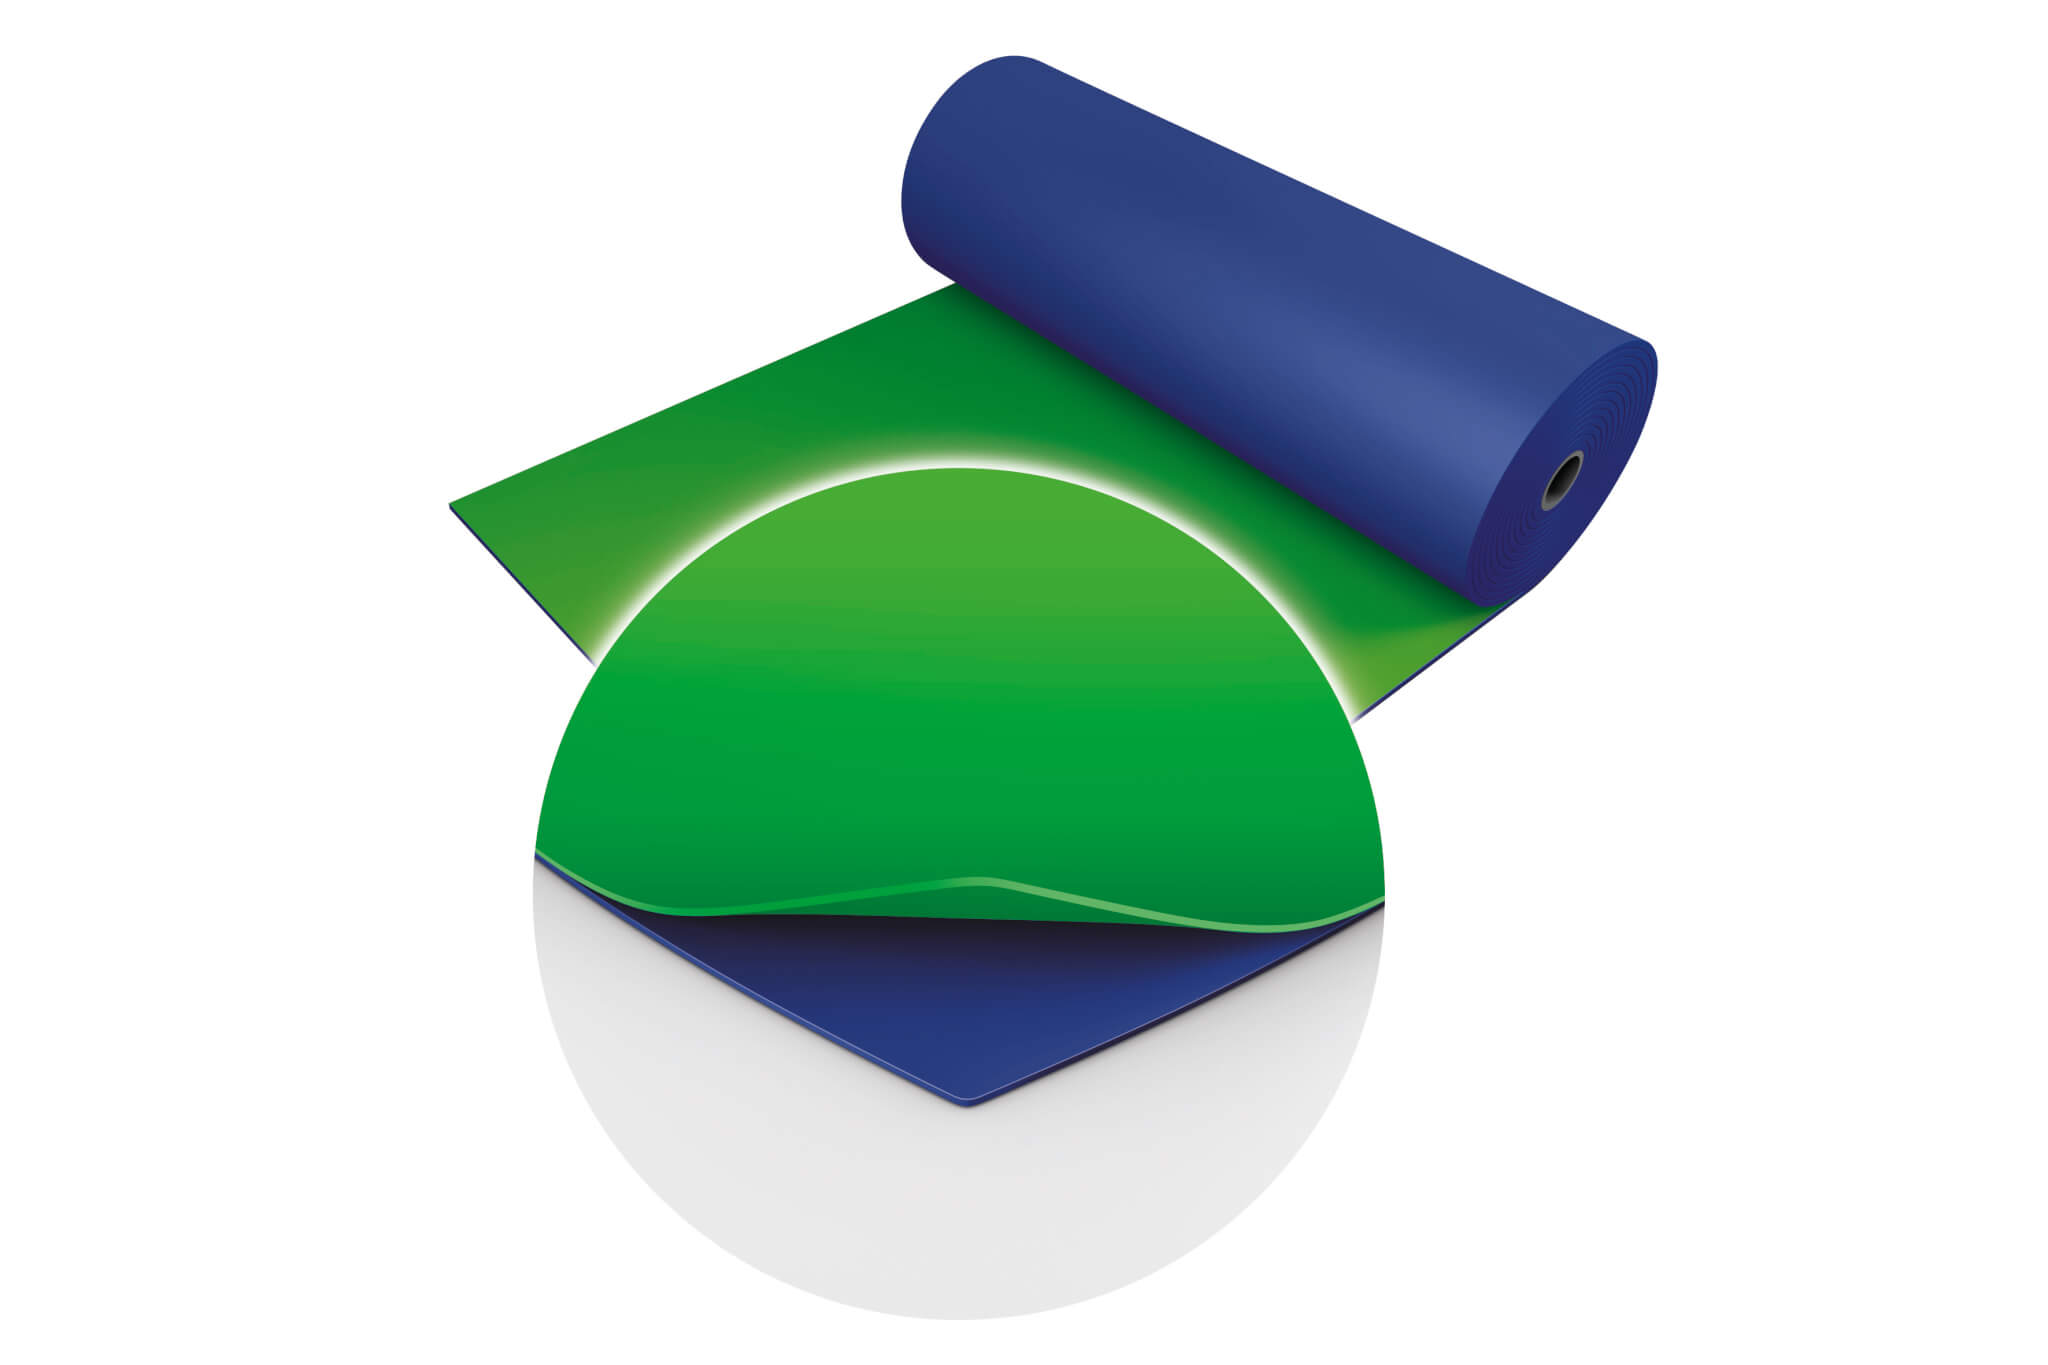 Chroma Key Green/Chroma Key Blue (119)